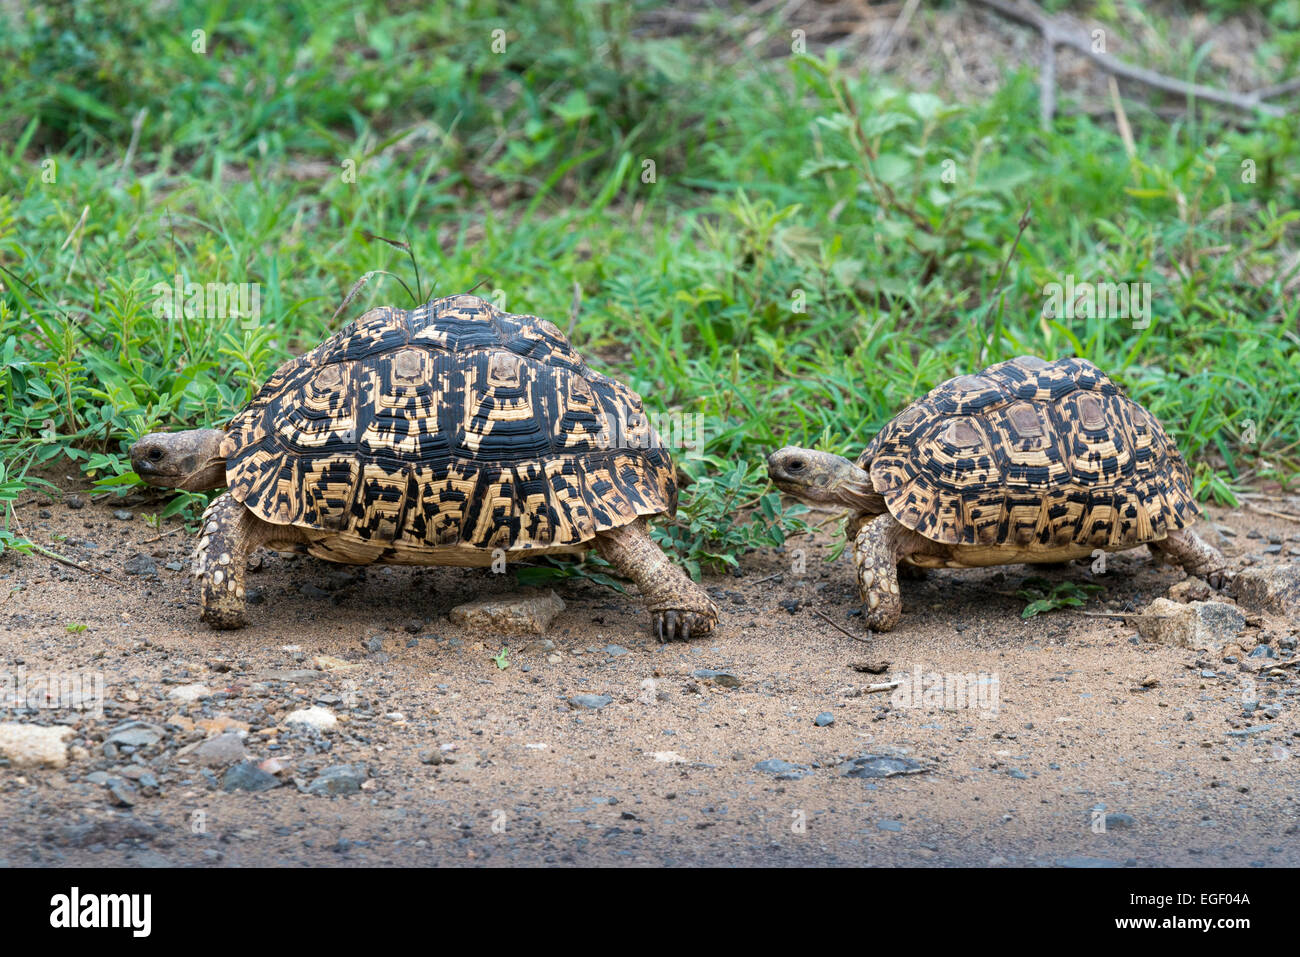 Mating behaviour two Leopard tortoises (Geochelone pardalis), Kruger National Park, South Africa, Africa - Stock Image